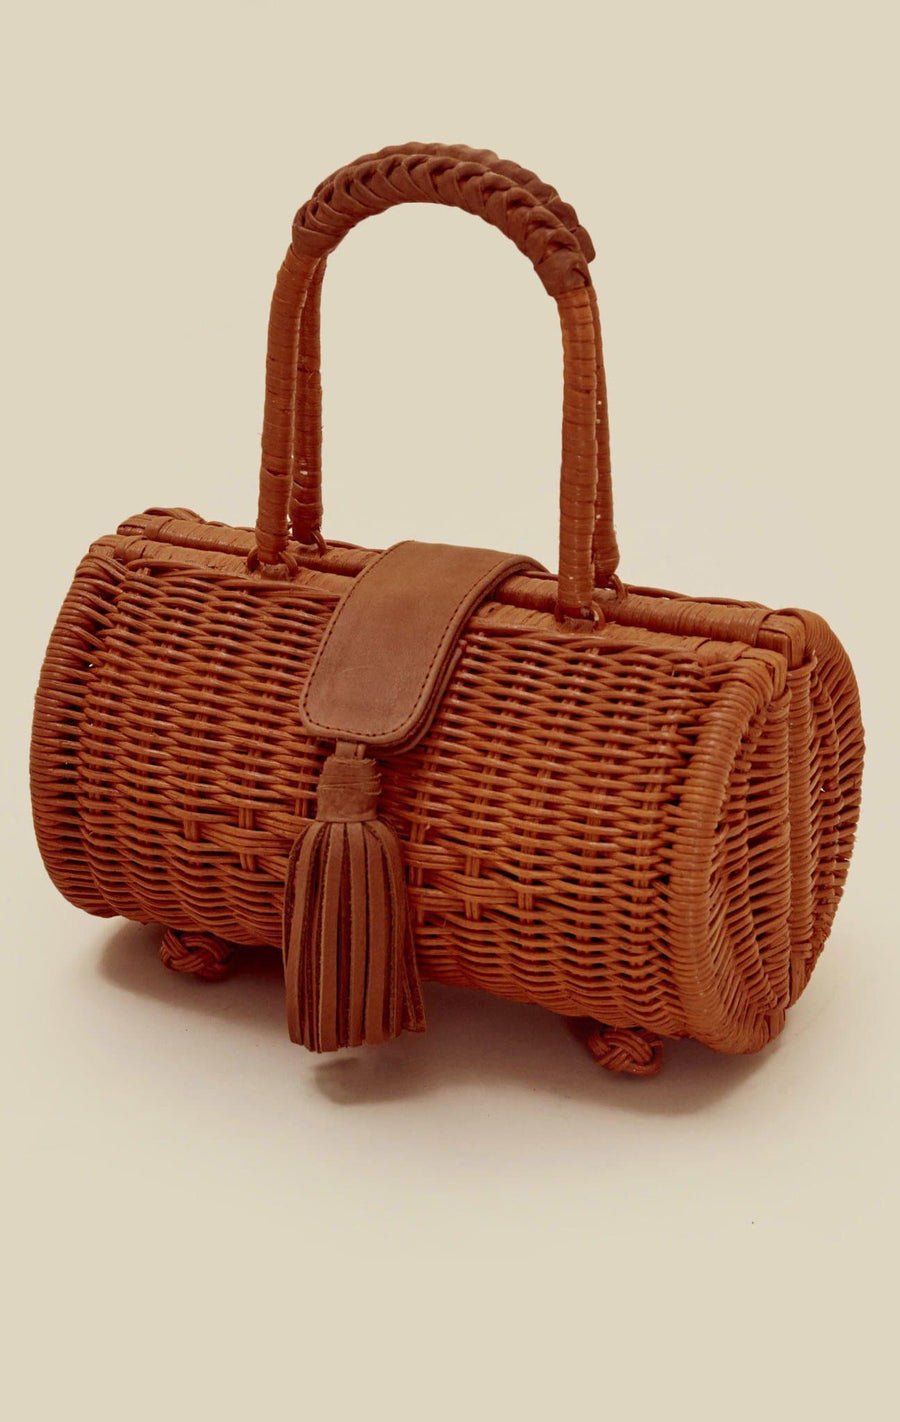 DARK NATURAL WICKER